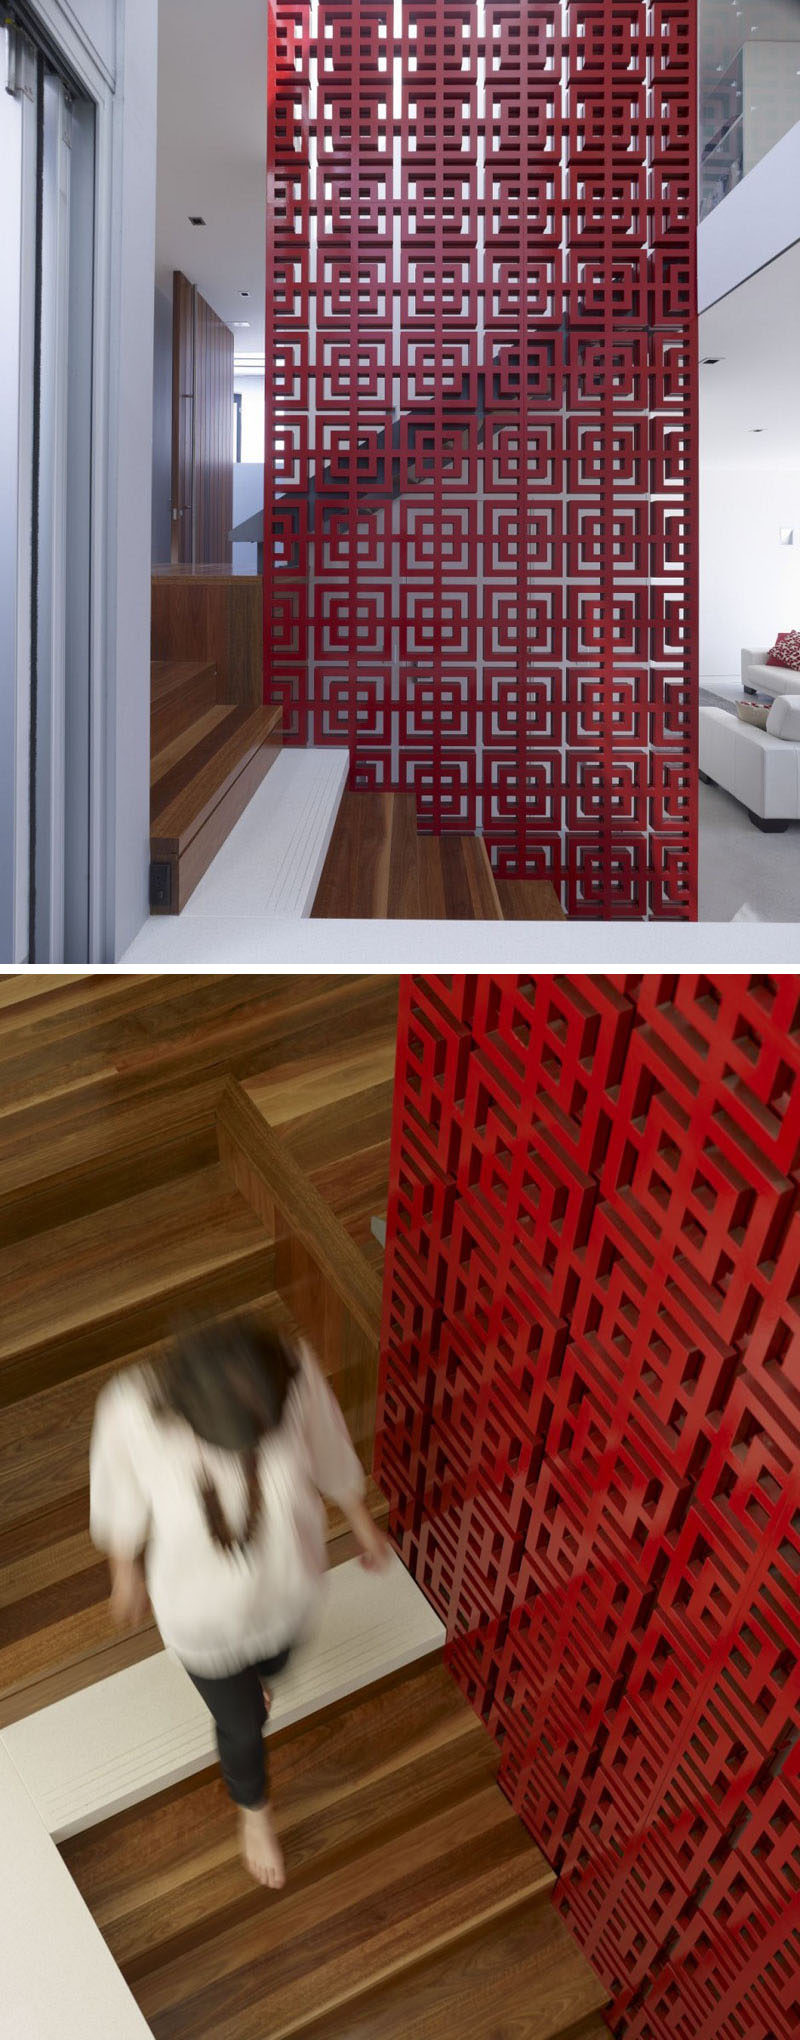 A patterned red safety railing on these wood stairs adds an artistic and bold statement in this modern house.